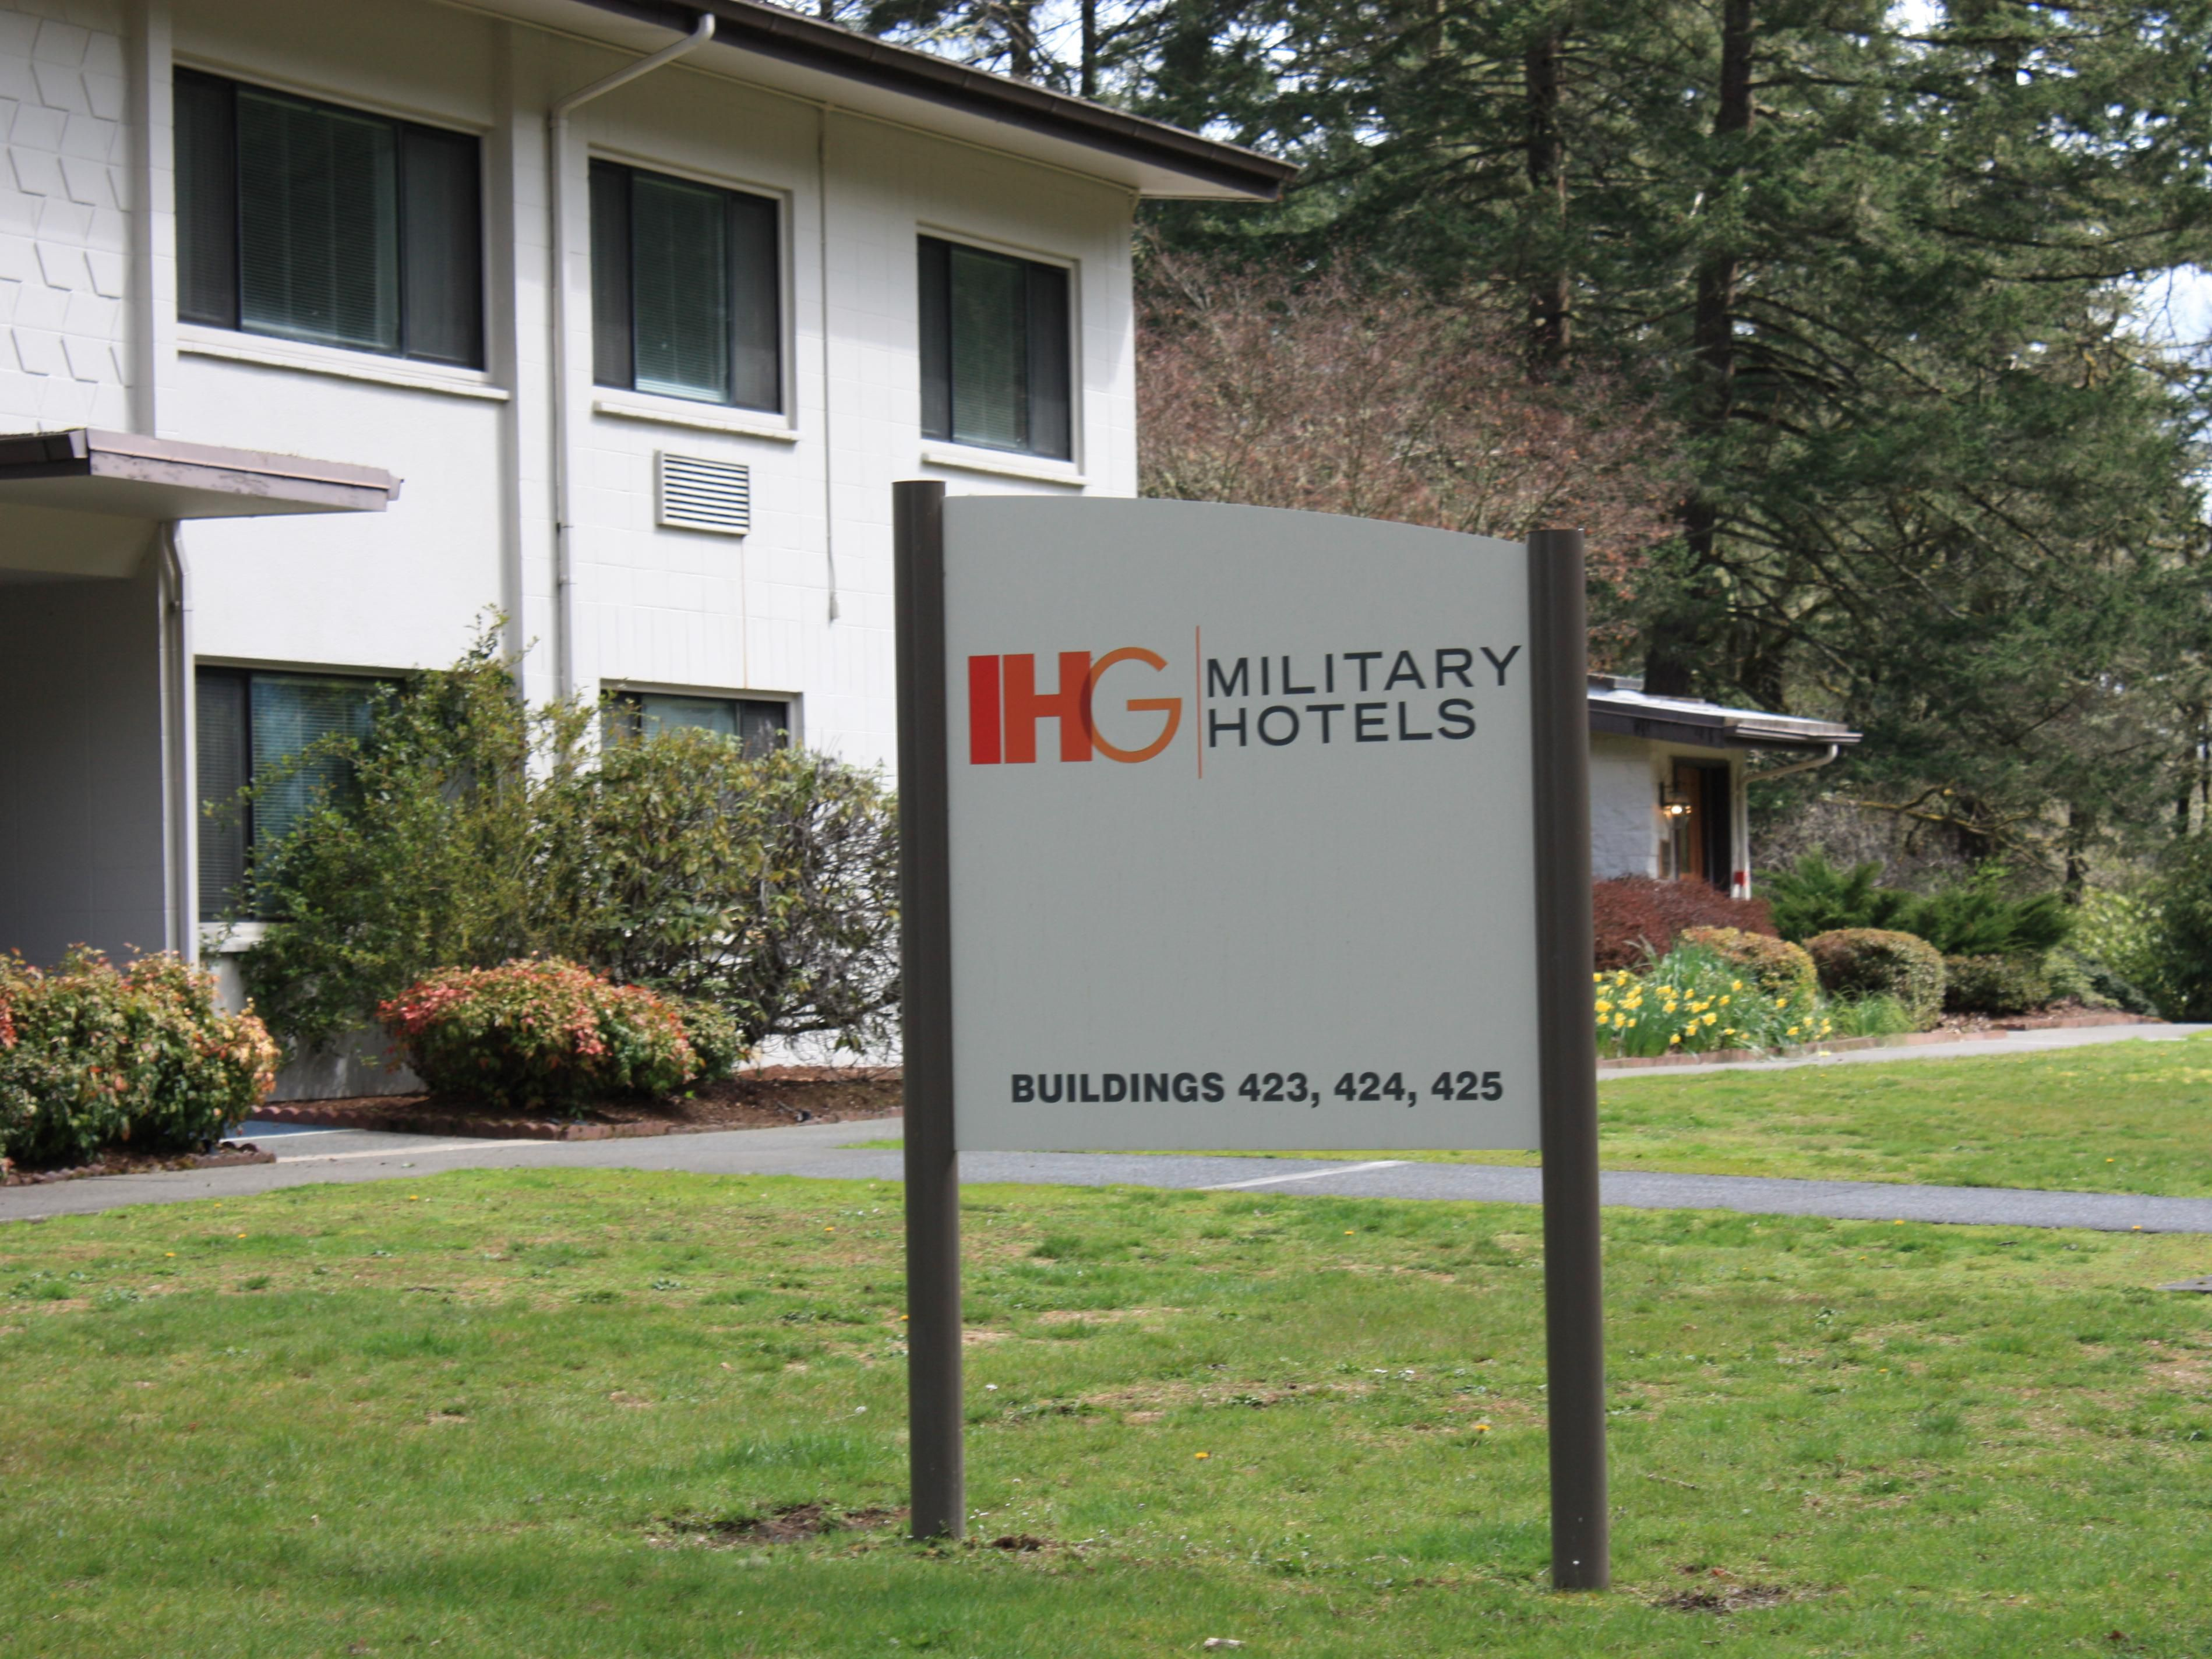 IHG Military Hotels Ft. Lewis-McChord Bldgs 423, 424, 425 Exterior